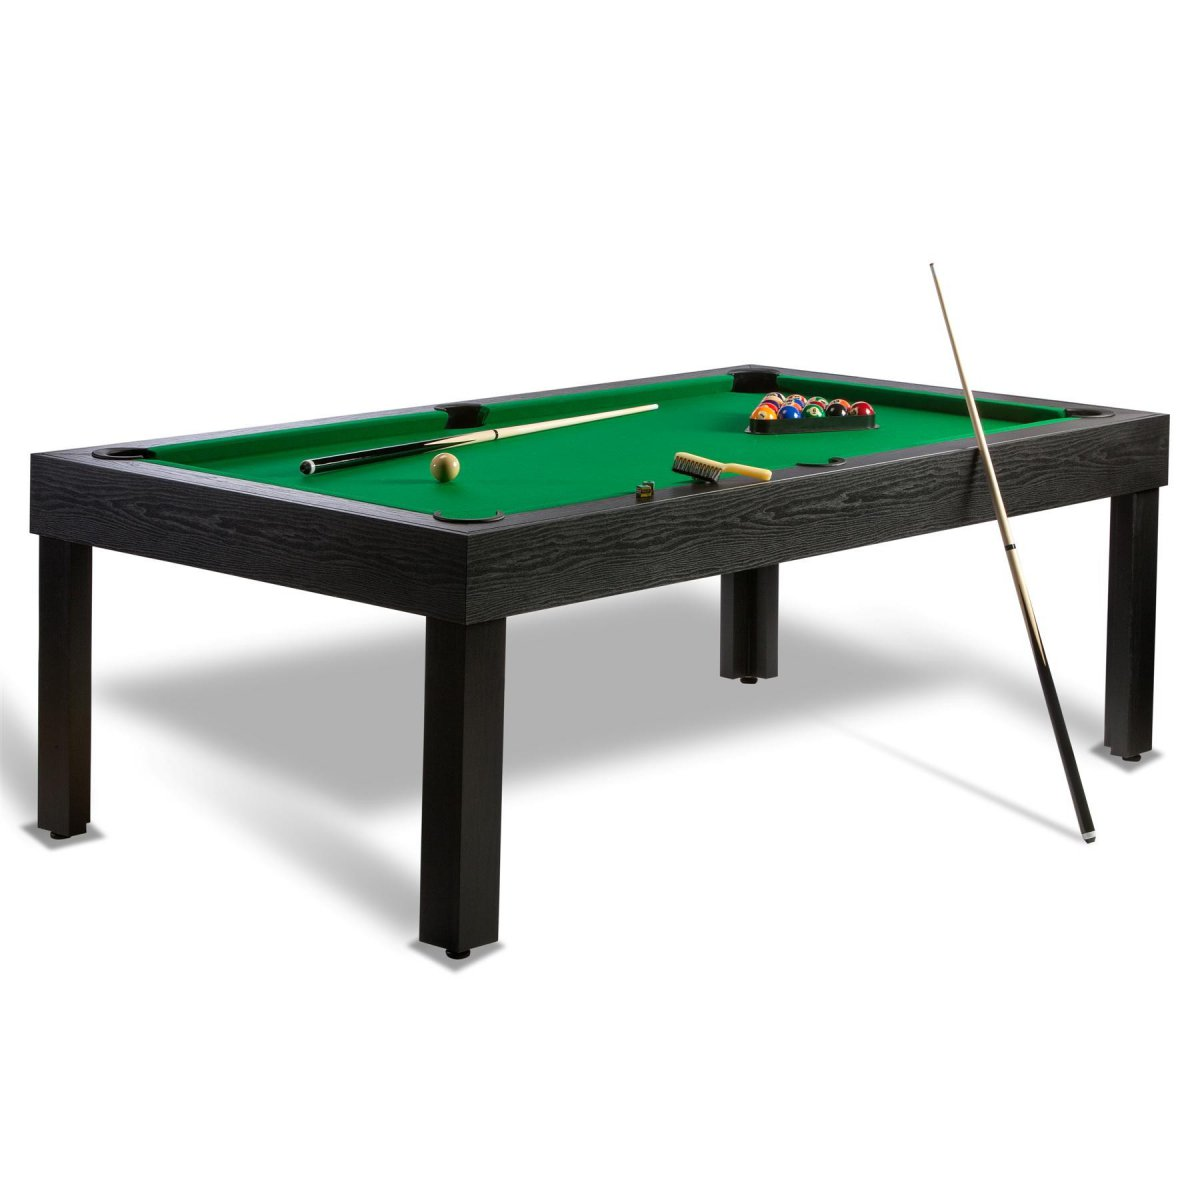 Table de billard prix maison design - Table de billard transformable ...